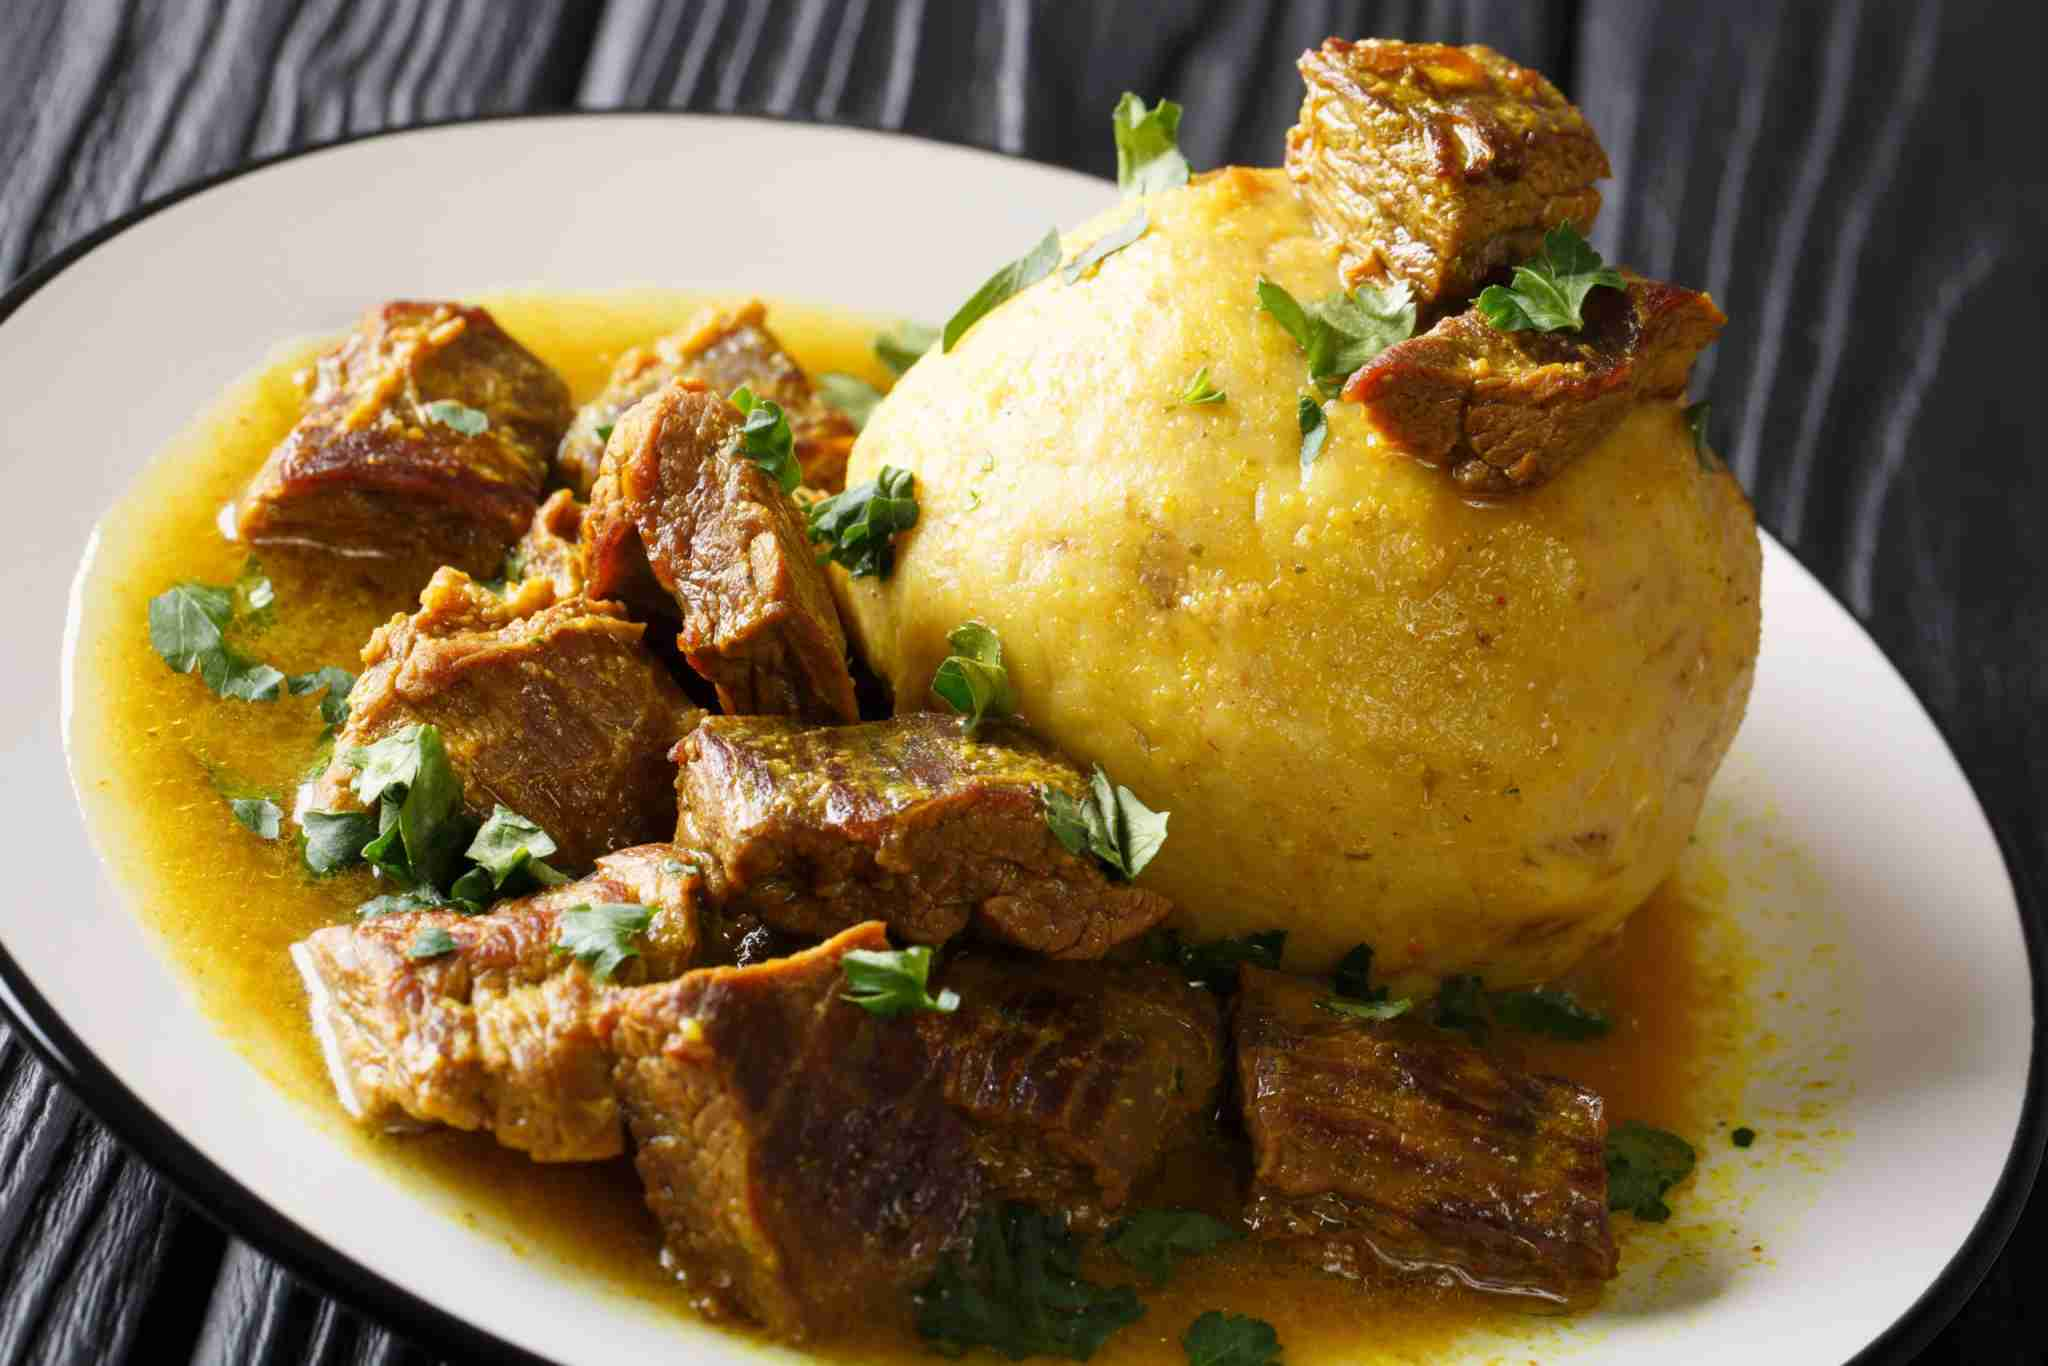 Puerto Rican Mofongo made from plantains, garlic and chicharron served with meat and broth close-up on a plate on the table. horizontal